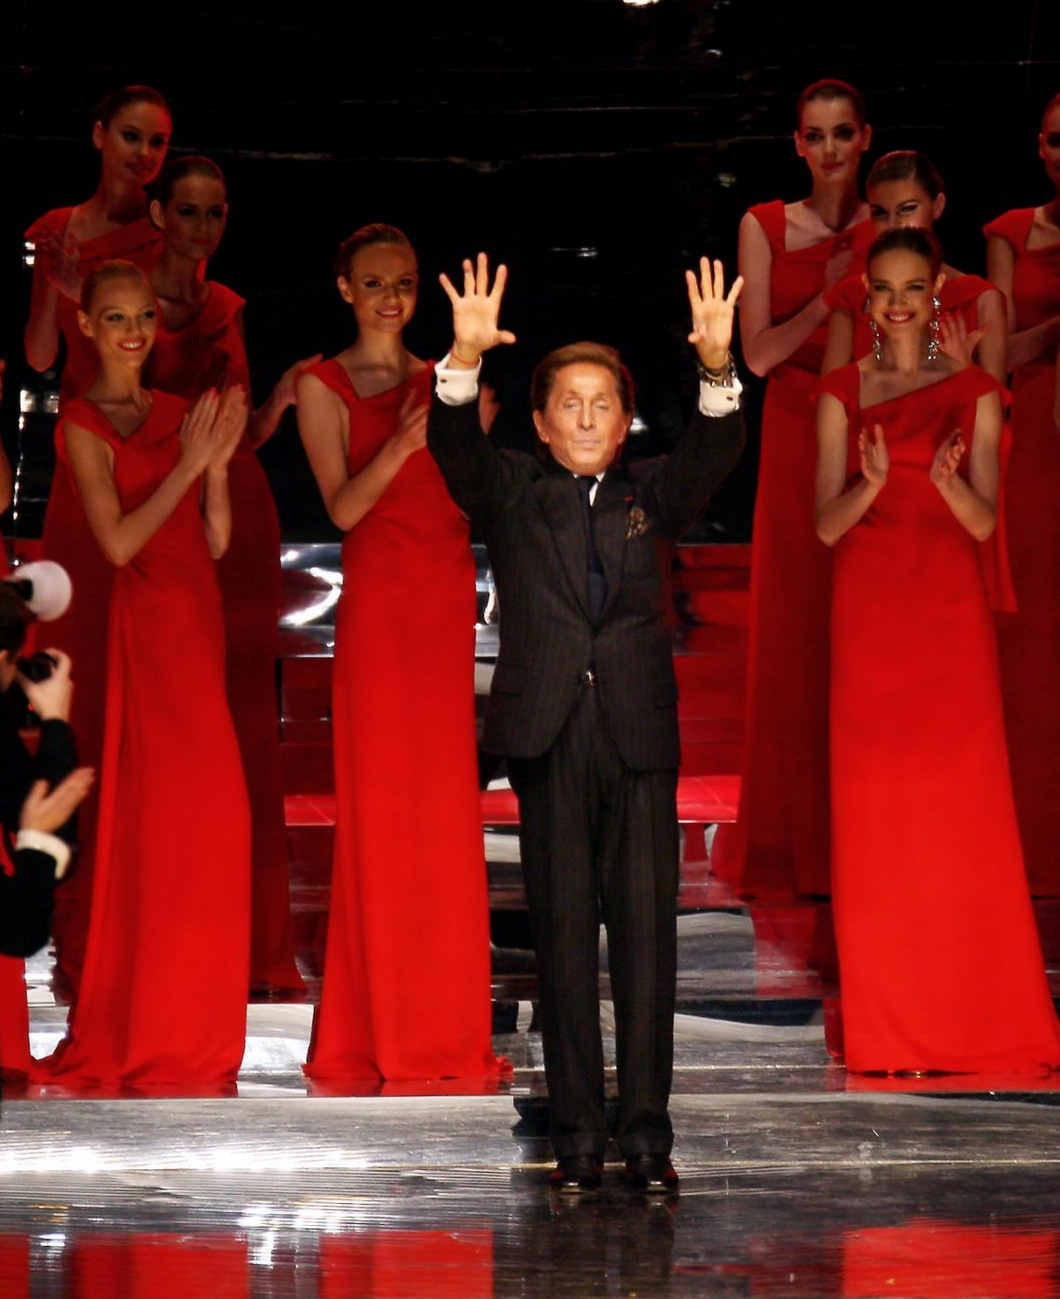 Dsign Valentino Qatar Royal Family Acquires Iconic Italian Fashion House